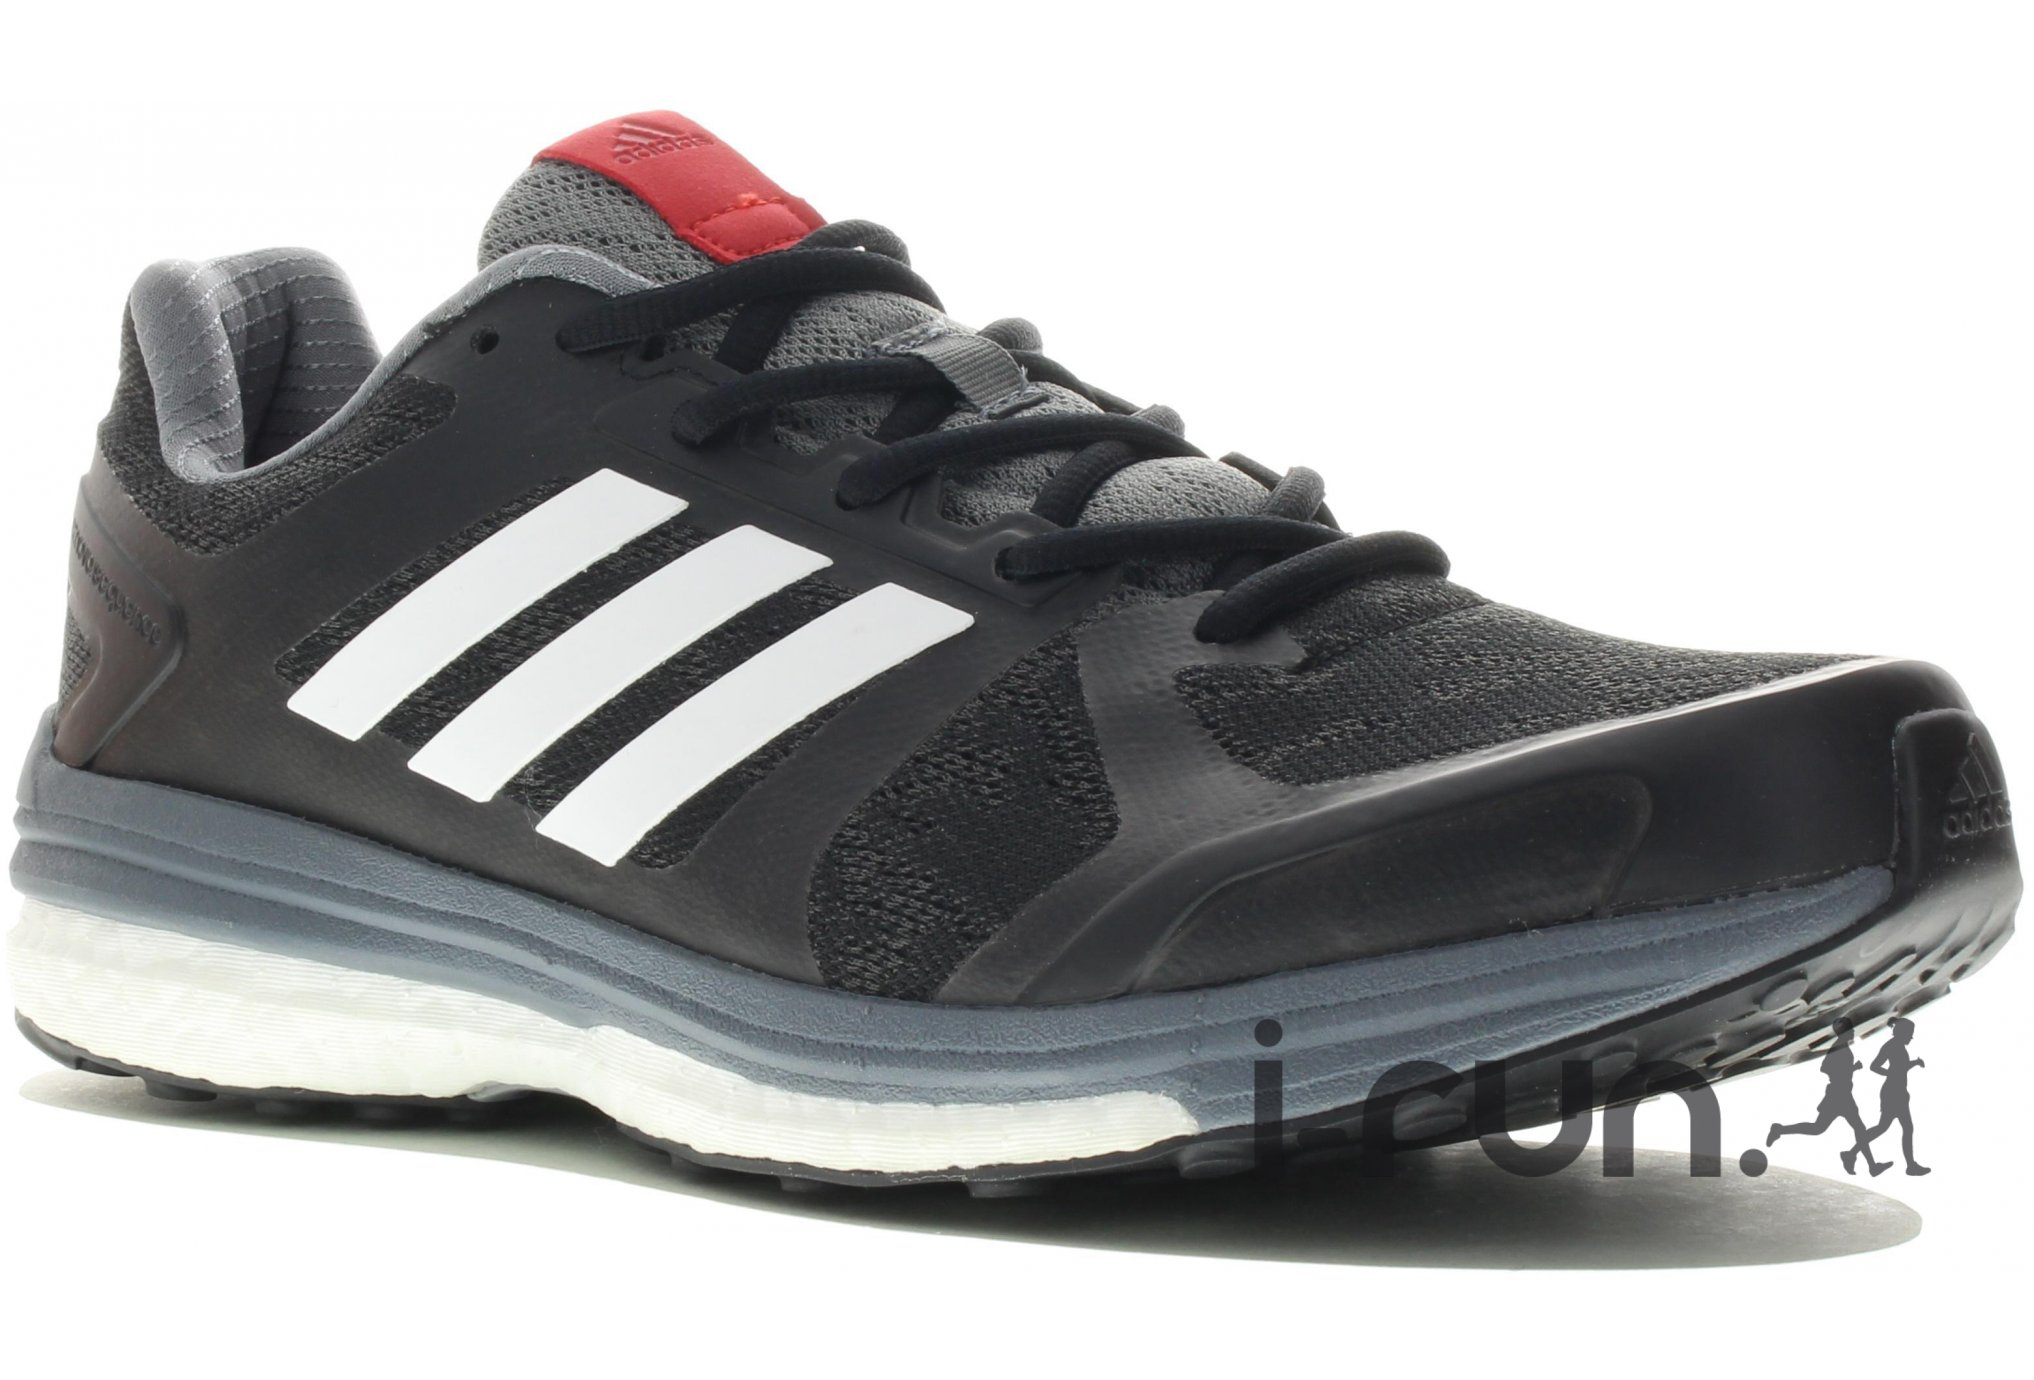 Adidas Supernova sequence boost 9 m chaussures homme